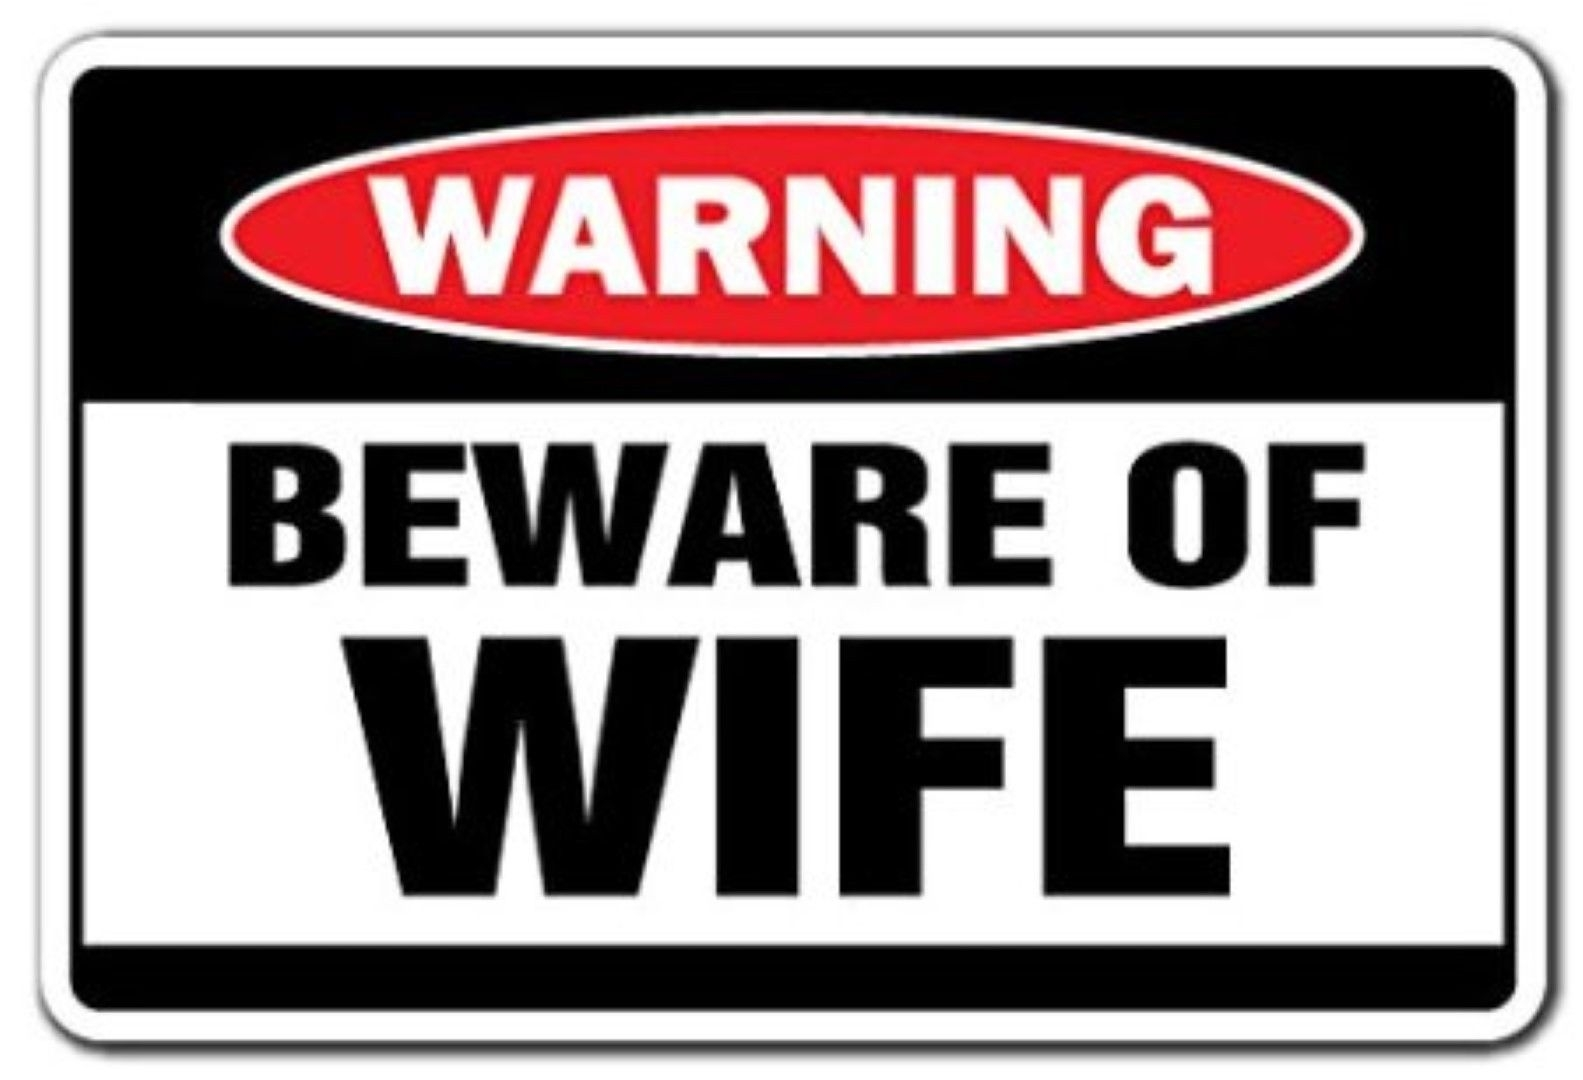 Wall Stickers Boys Room Funny Warning Sign Beware Of Wife Sticker Self Adhesive